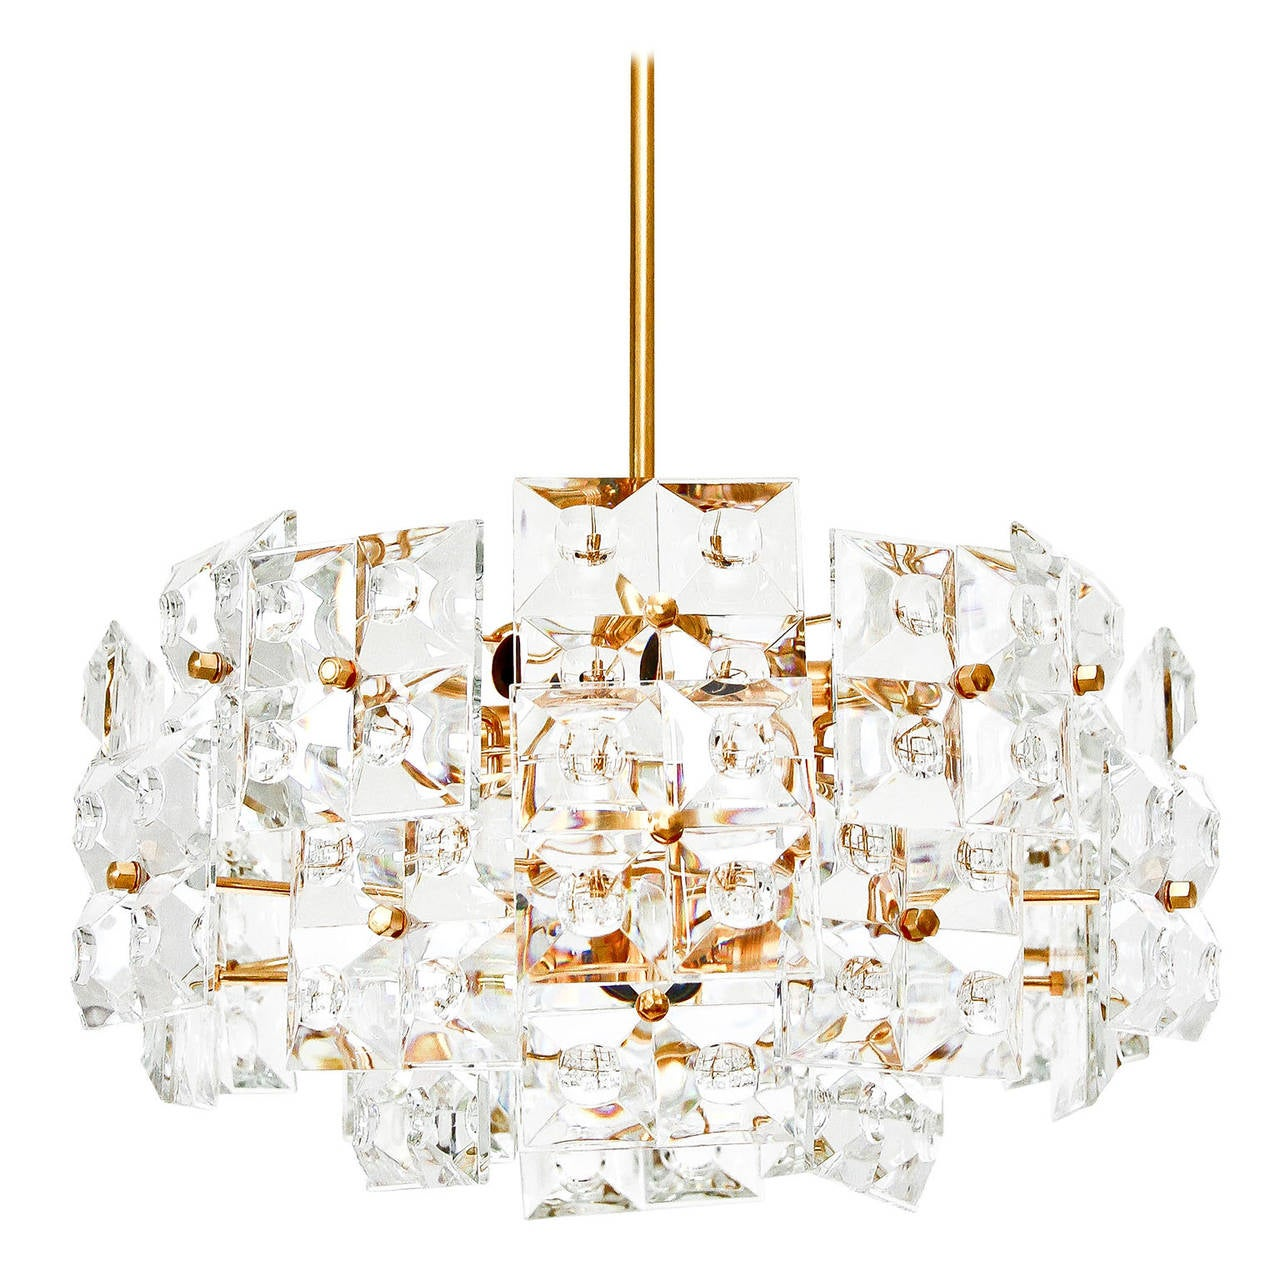 Kinkeldey Chandelier, Gold-Plated Brass Crystal Glass, 1970 For Sale